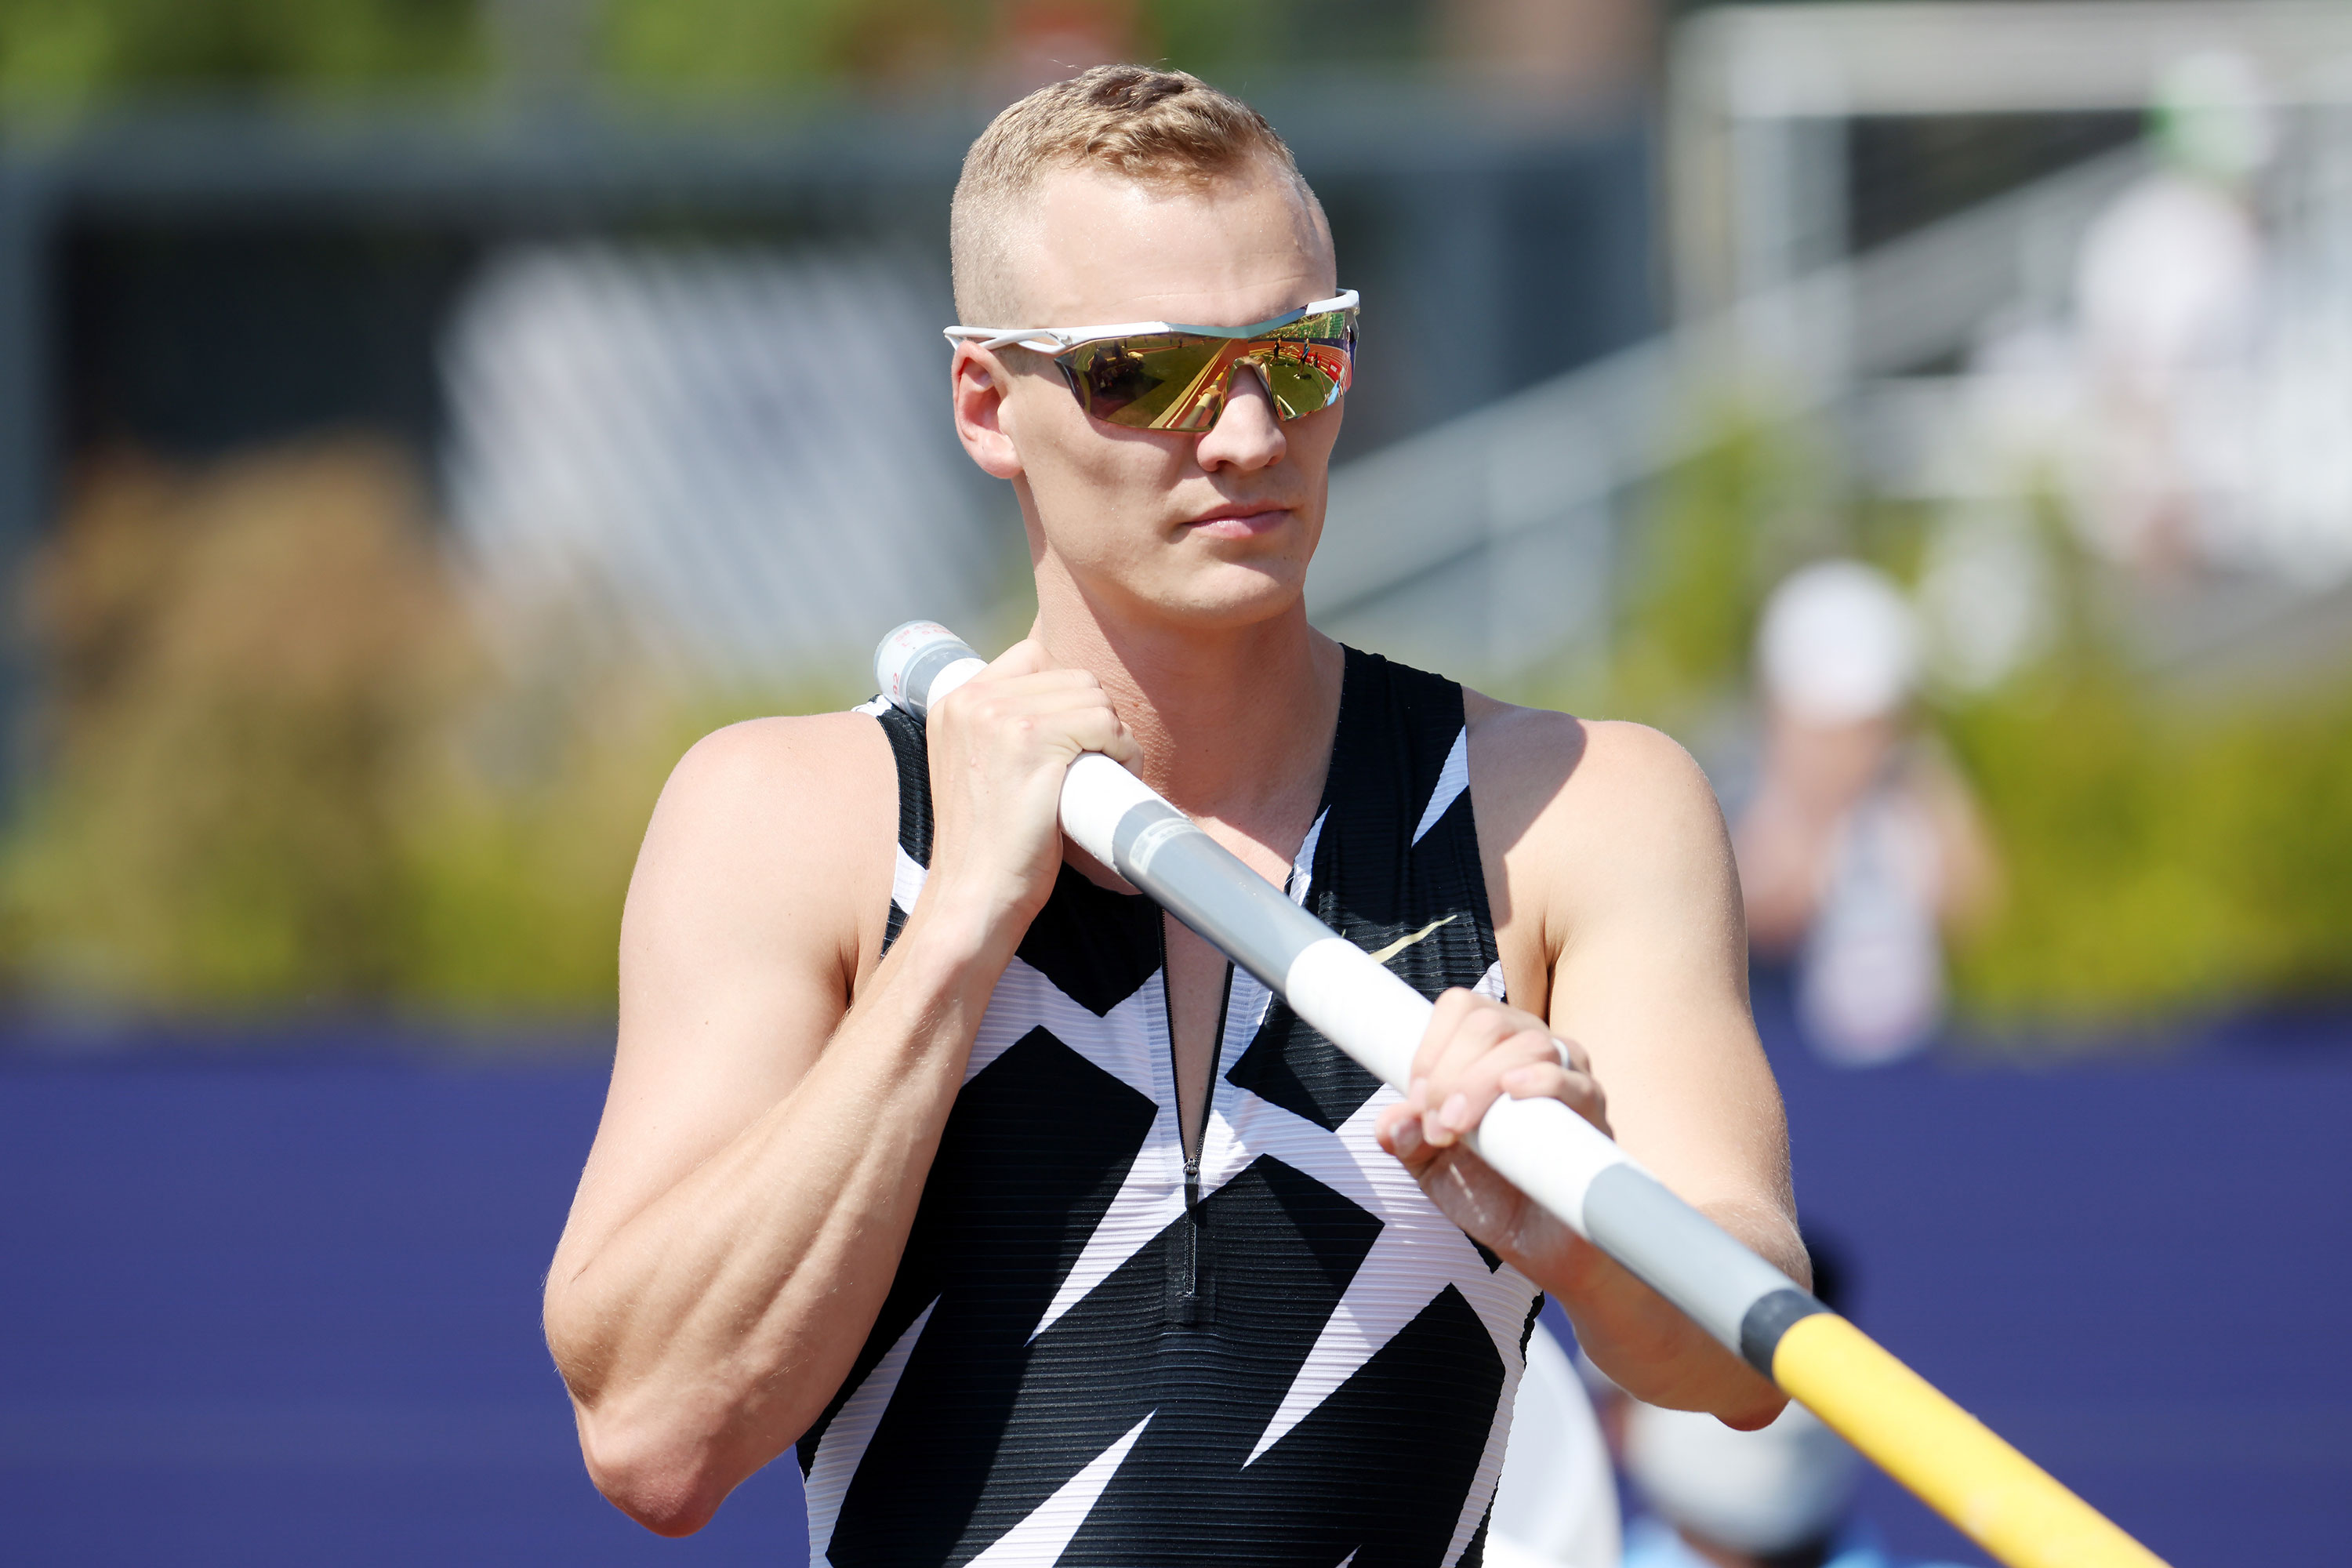 Sam Kendricks is seen during the US Olympic Track and Field Team Trials on June 21 in Eugene, Oregon.